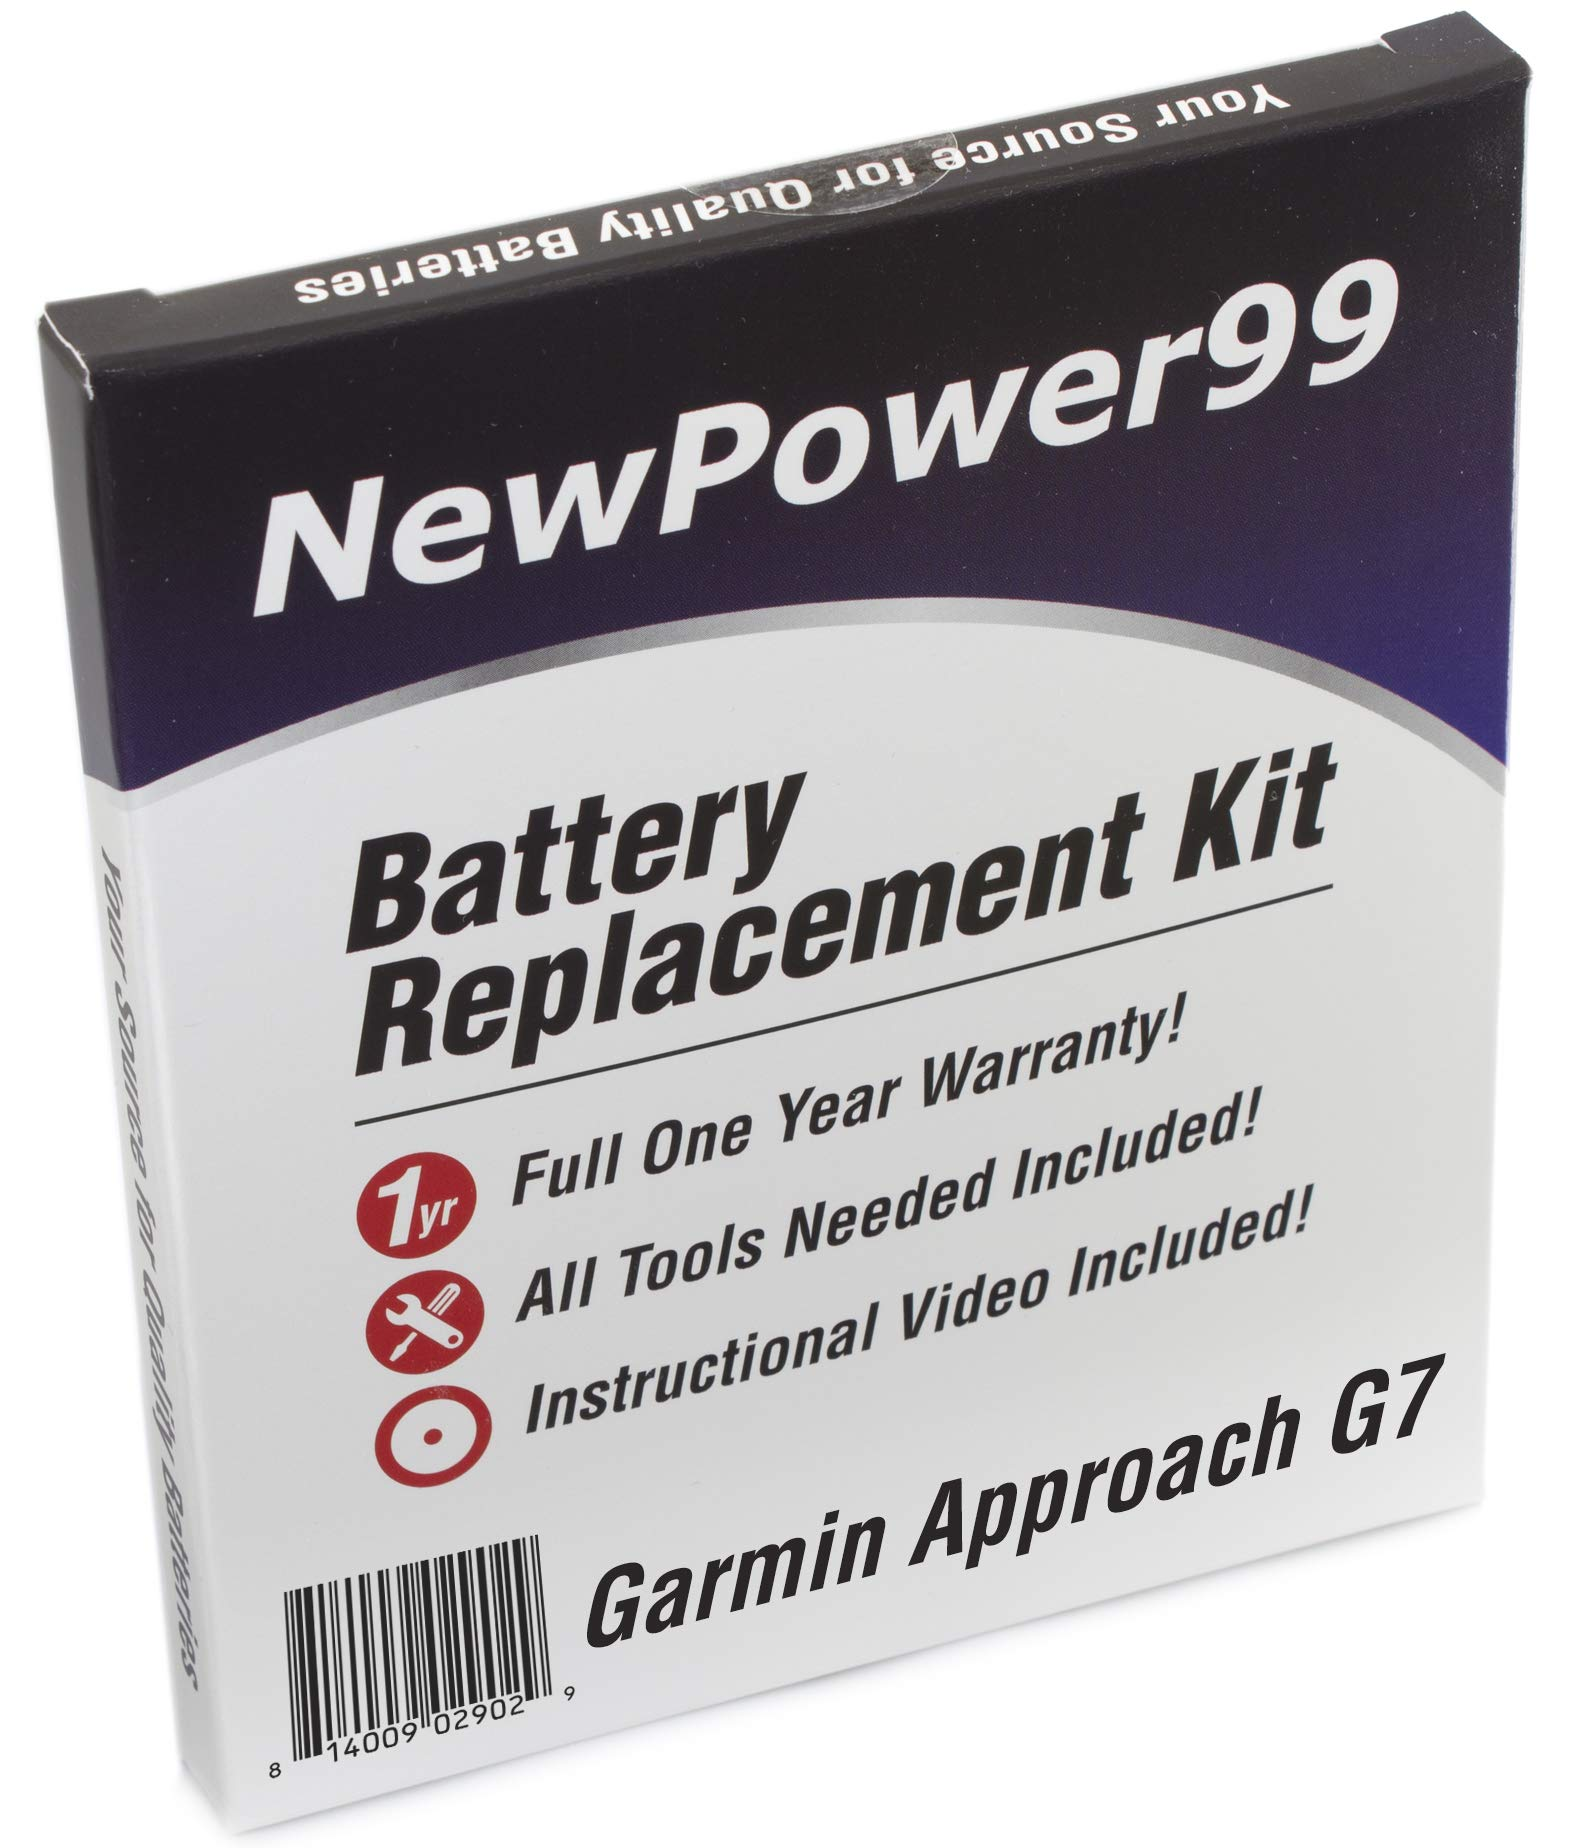 NewPower99 Battery Replacement Kit for Garmin Approach G7 with Installation Video, Tools, and Extended Life Battery by NewPower99